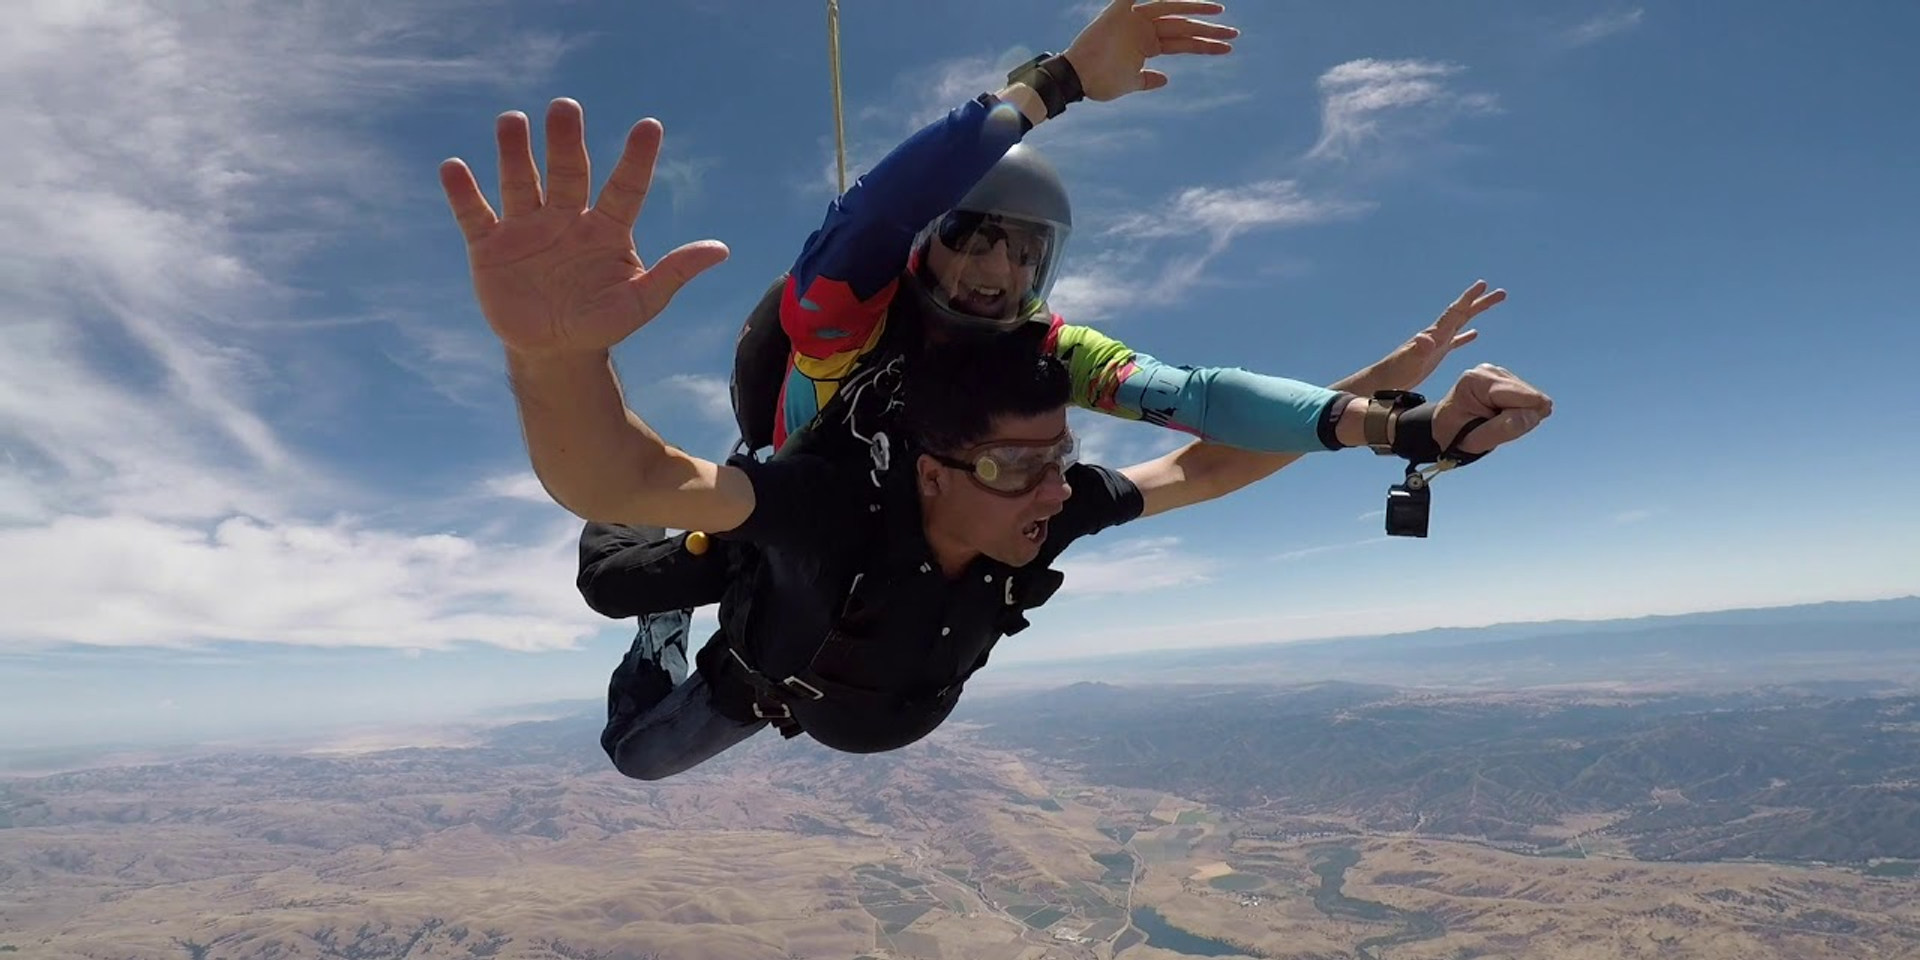 Ramesh's June 2019 First Tandem Skydive in Hollister, CA